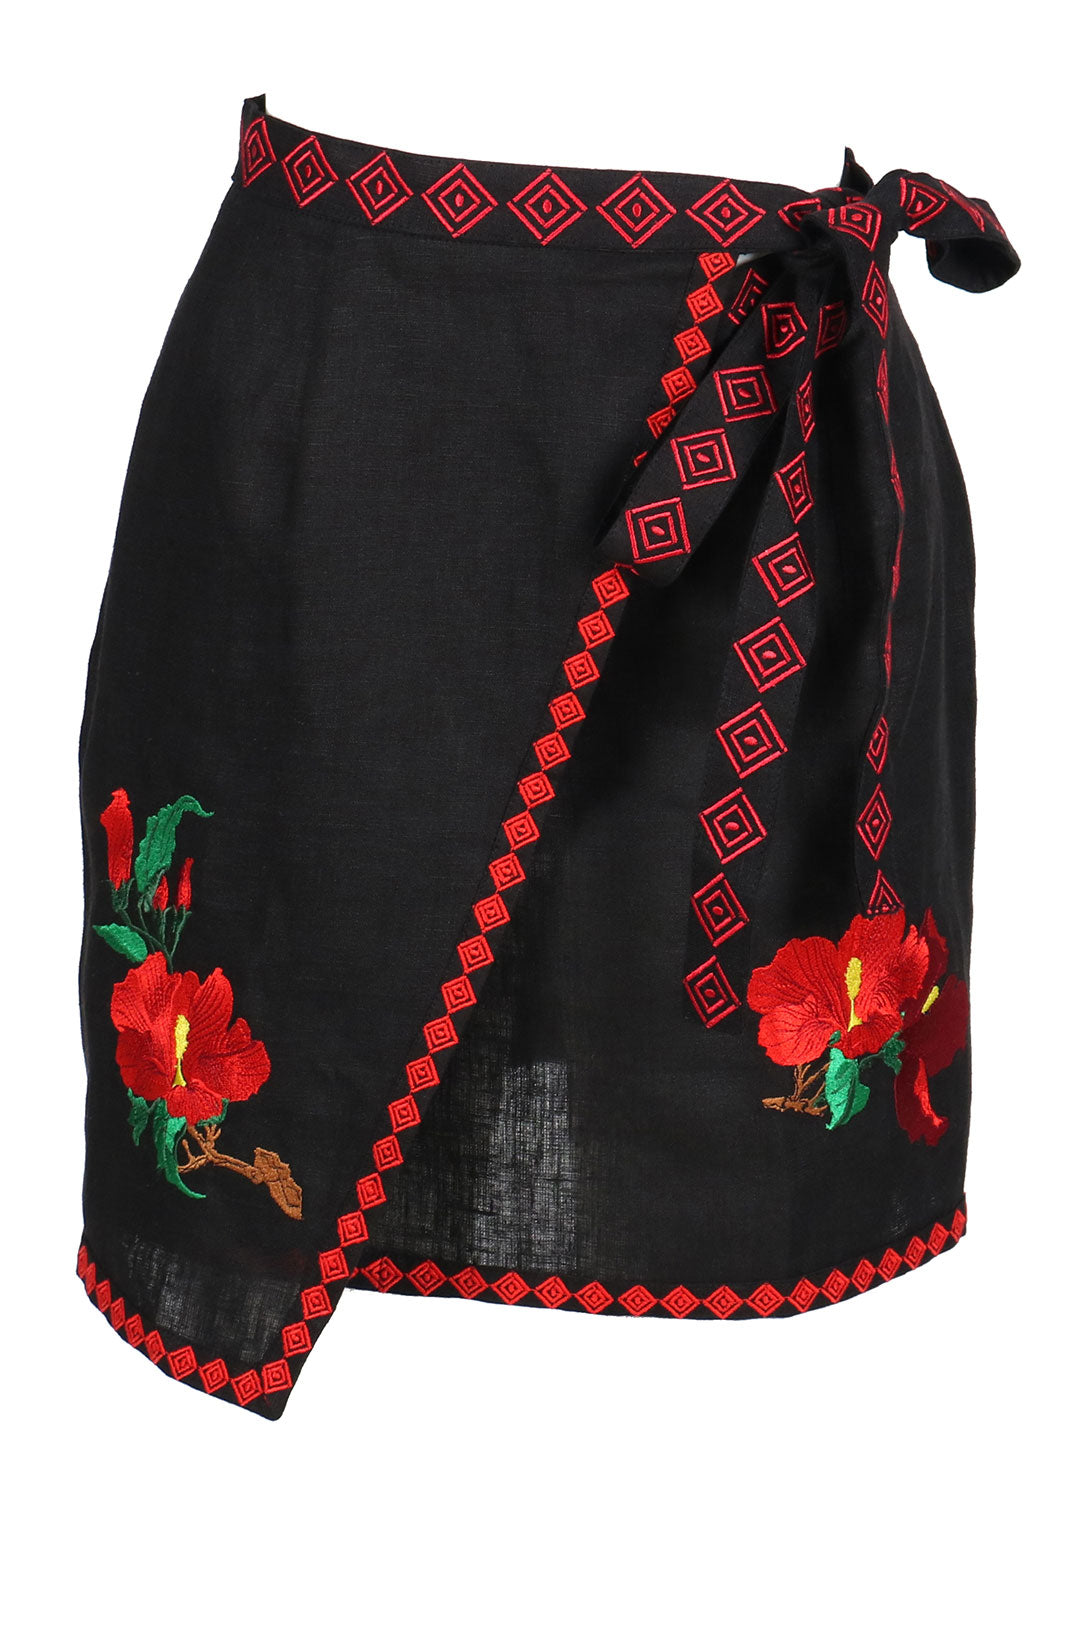 Fanm Mon ZINN Black Linen Exotic Tropical Floral Embroidery Vyshyvanka MINI Skirt size XS-XXL